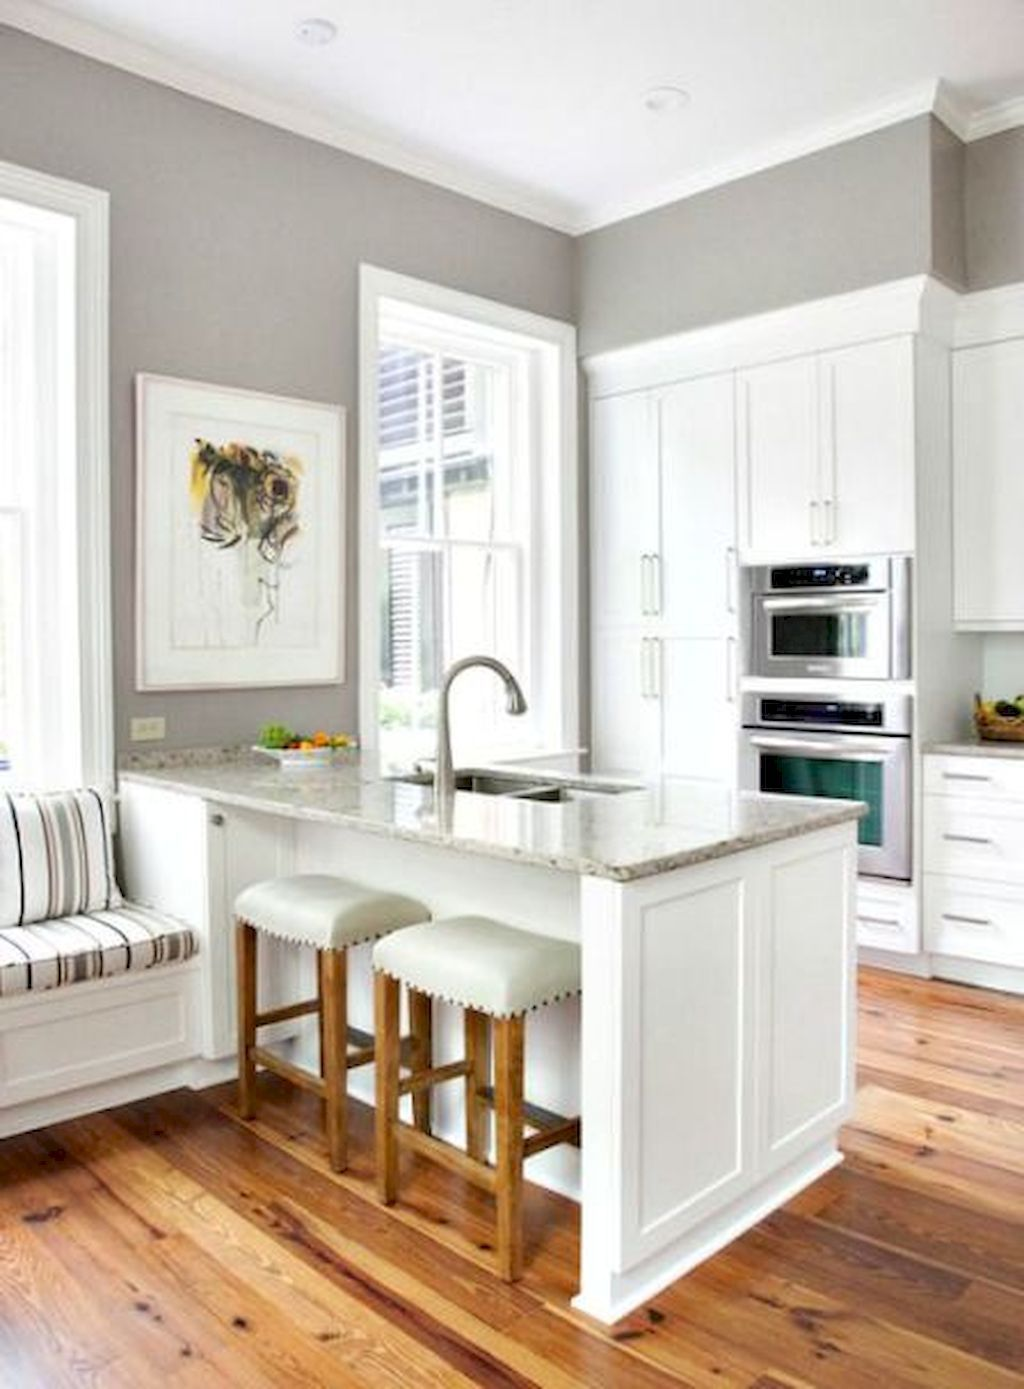 60 Small Kitchen Ideas Remodel | Kitchens, Kitchen design and Galley on gray kitchen cabinet hardware ideas, gray furniture ideas, white cabinets design ideas, gray bathroom ideas, gray kitchen countertops ideas, gray home decor ideas, corner kitchen cabinet design ideas, bathroom cabinets design ideas,